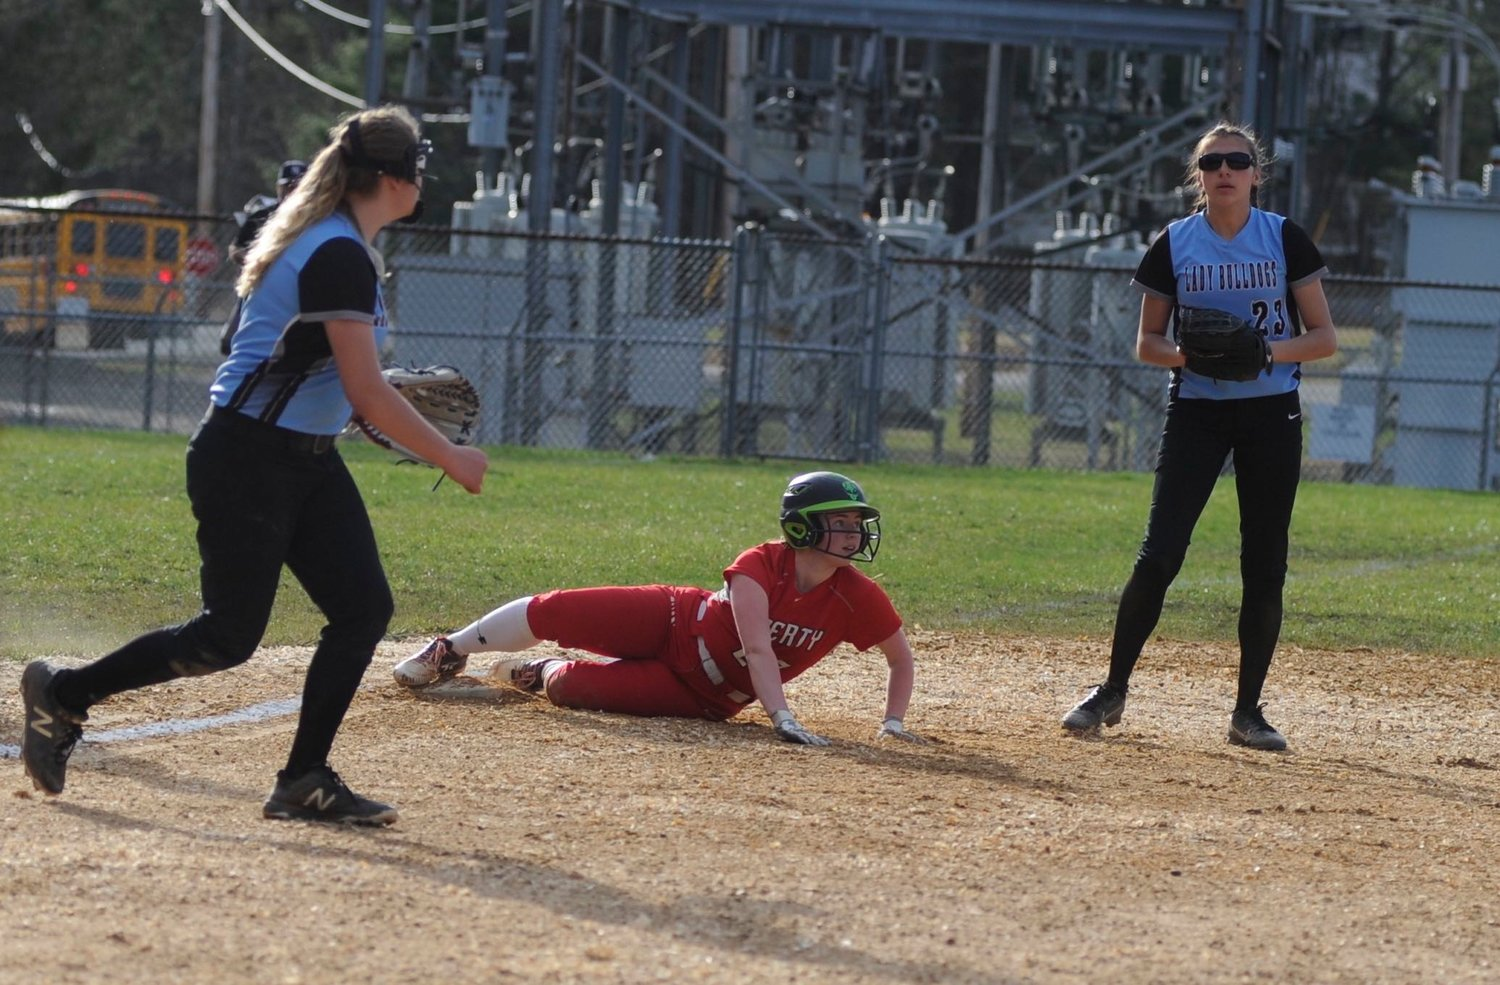 Double-teamed. Liberty's Katy Decker is safe at third, surrounded by Riley Ernst and Josephine Martinez of Sullivan West.